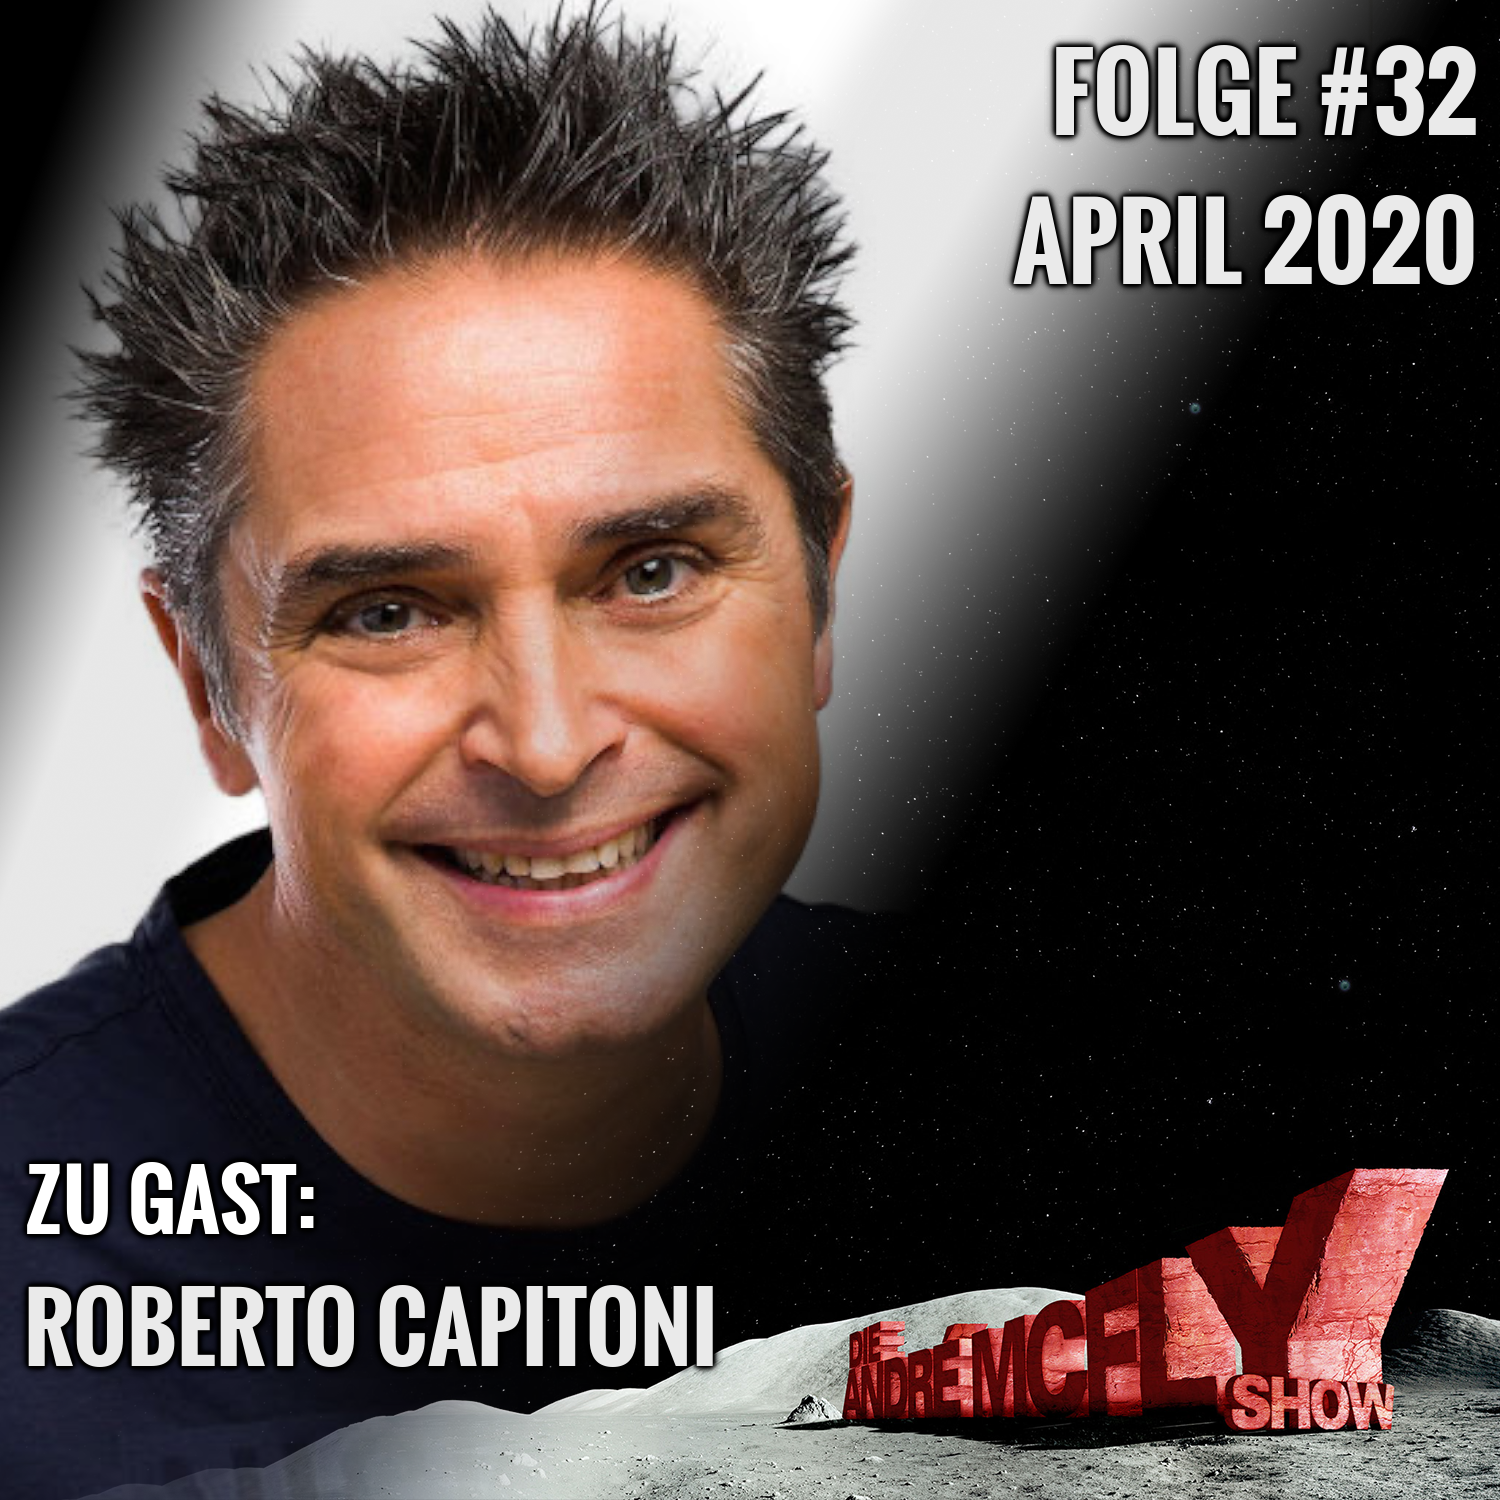 Die André McFly Show #32   Gast: Roberto Capitoni